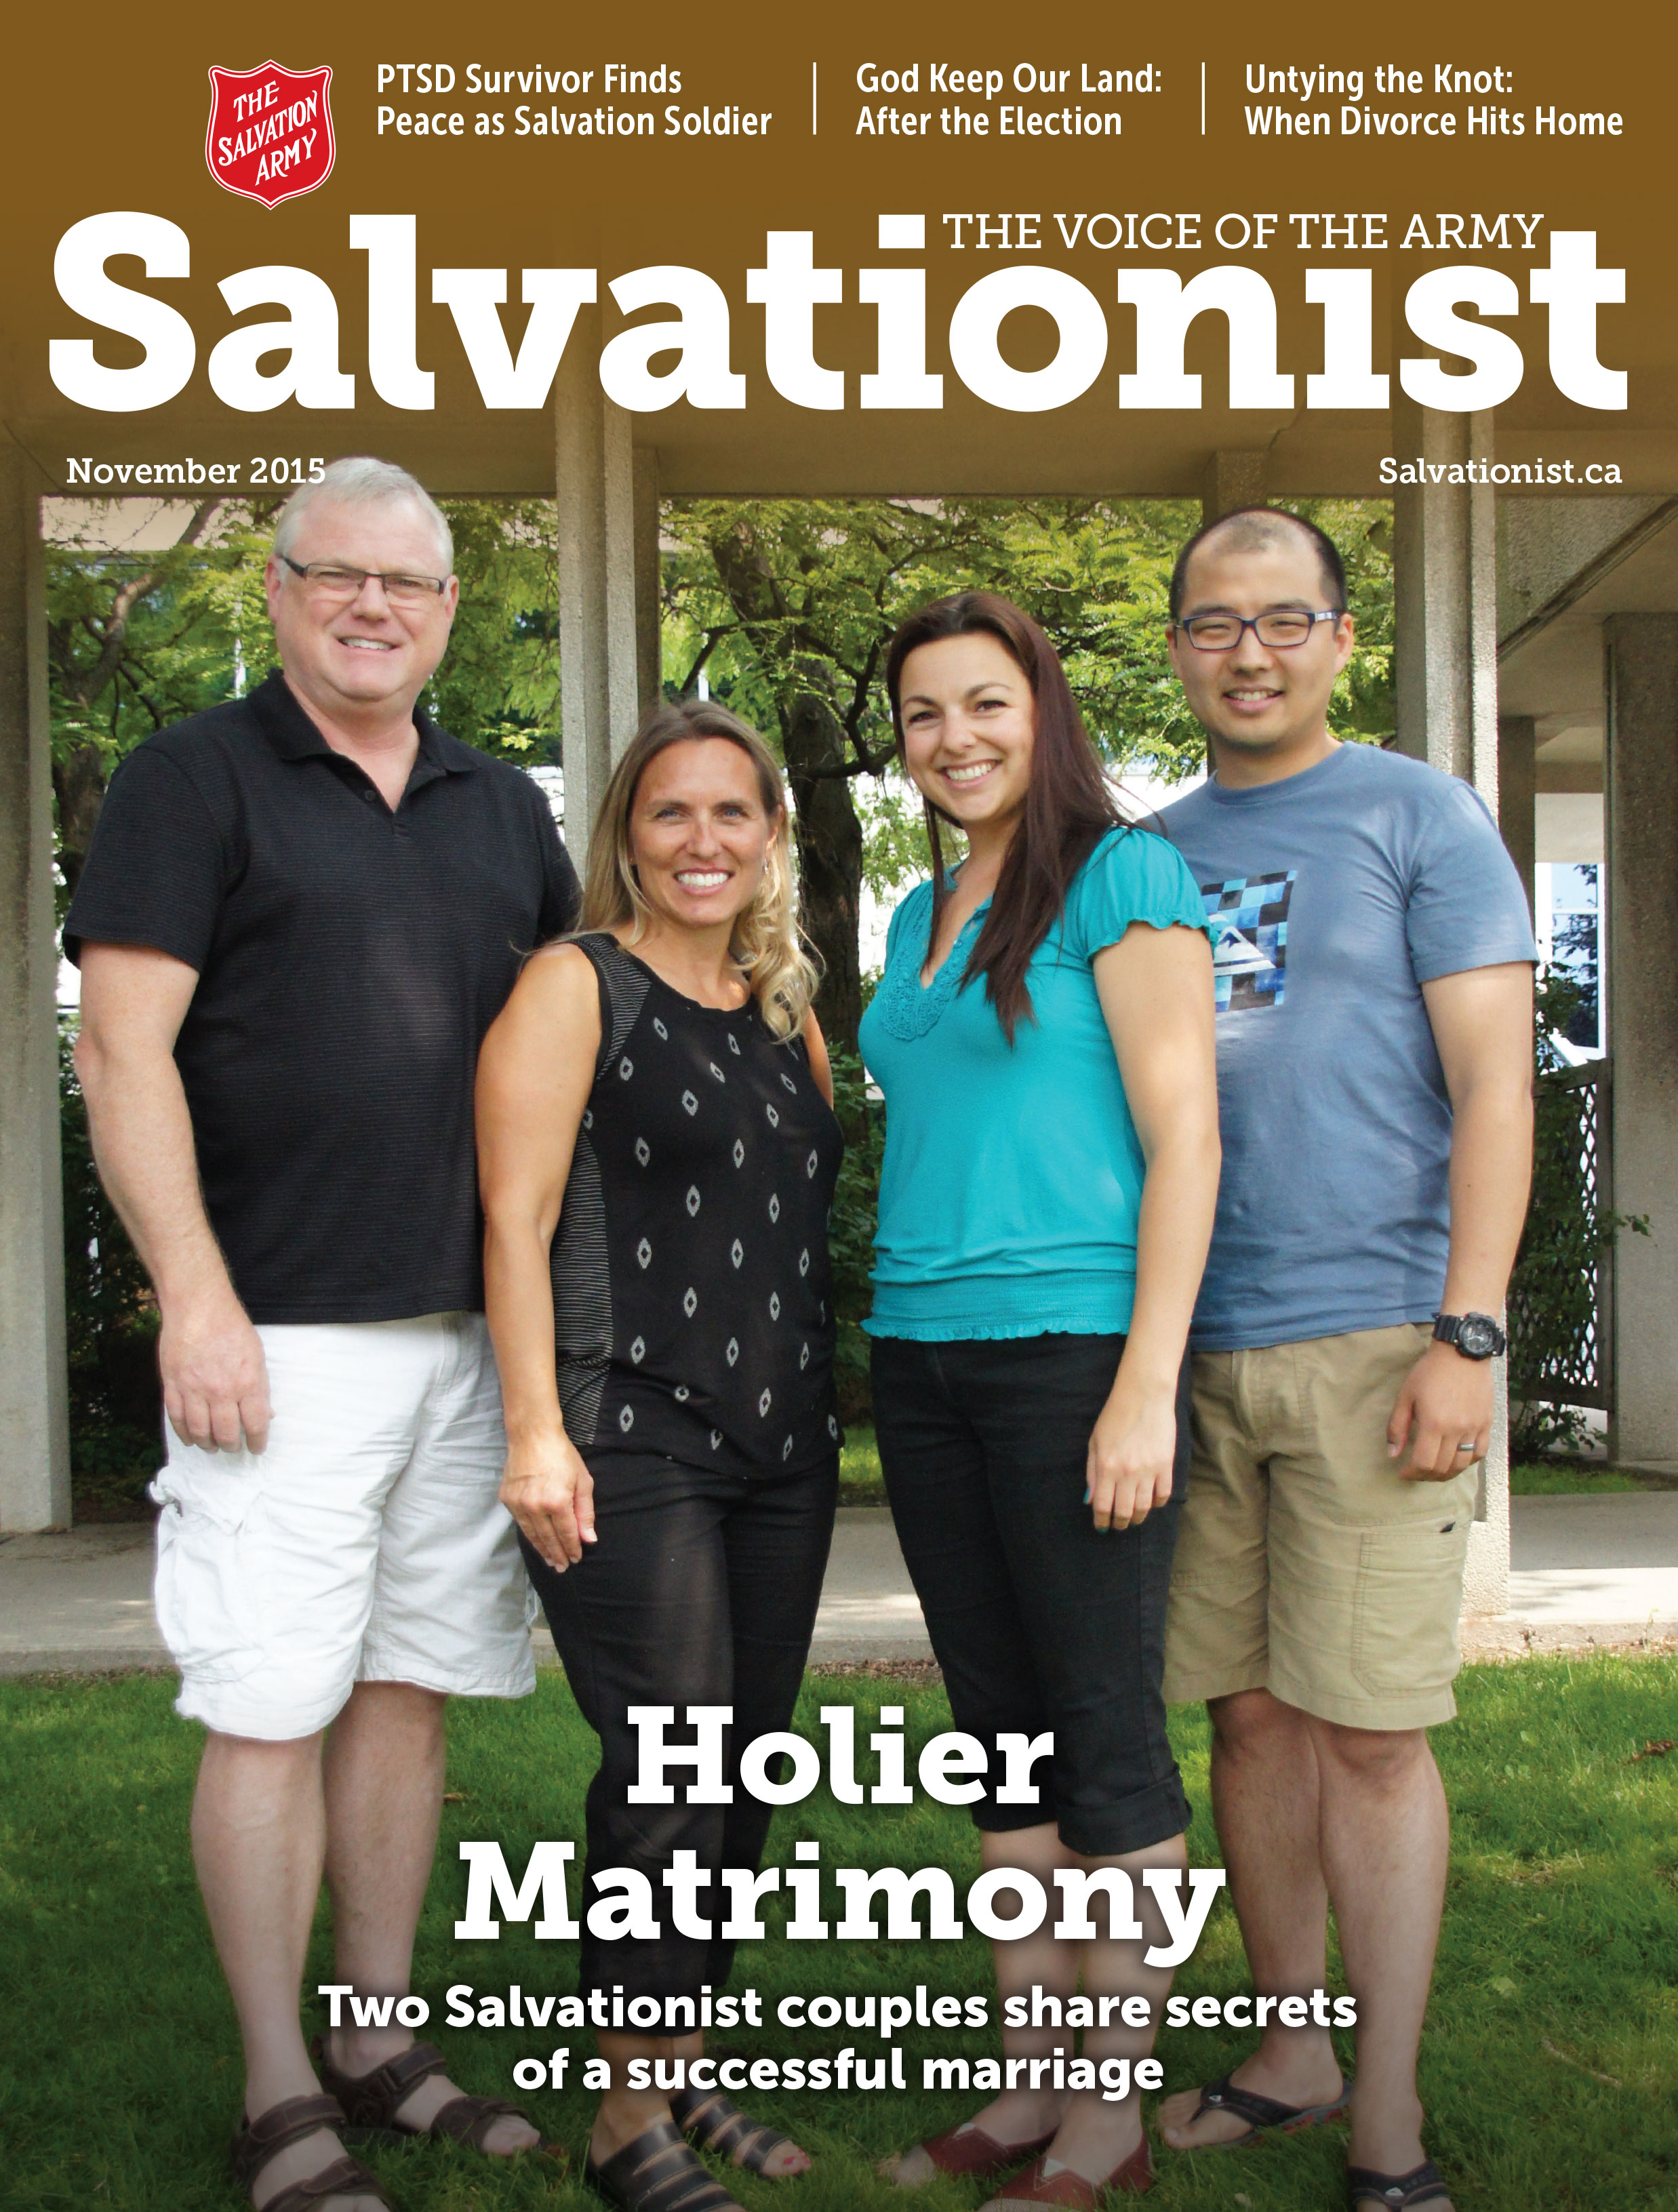 The Salvation Army - Salvationist.ca - Cover of November 2015 issue of Salvationist